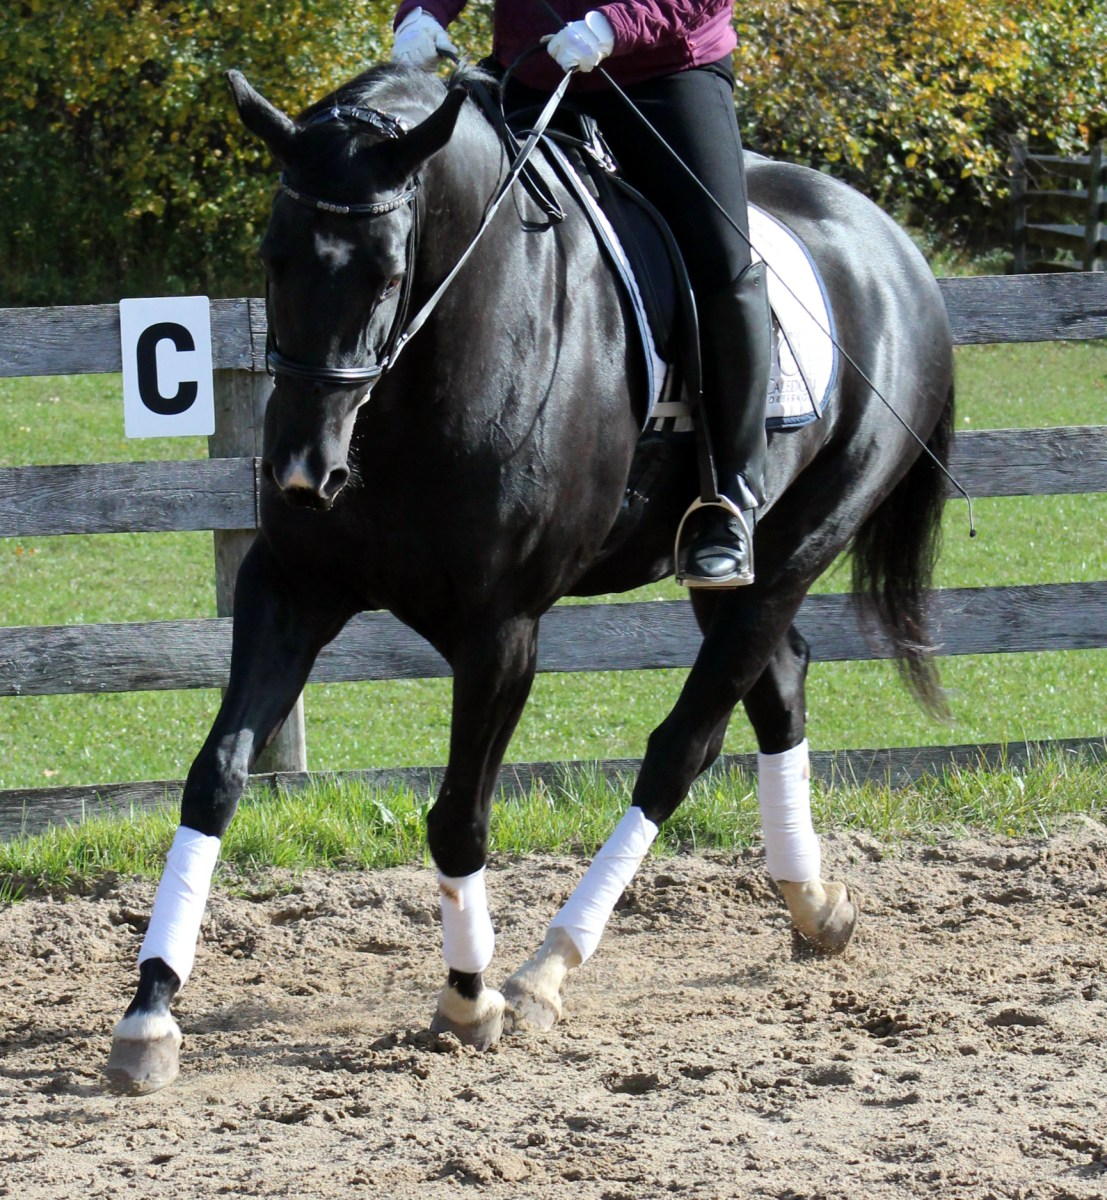 """The #1 Rider Problem Of The Year: Pulling To €�frame"""" A Horse €� Horse  Listening"""